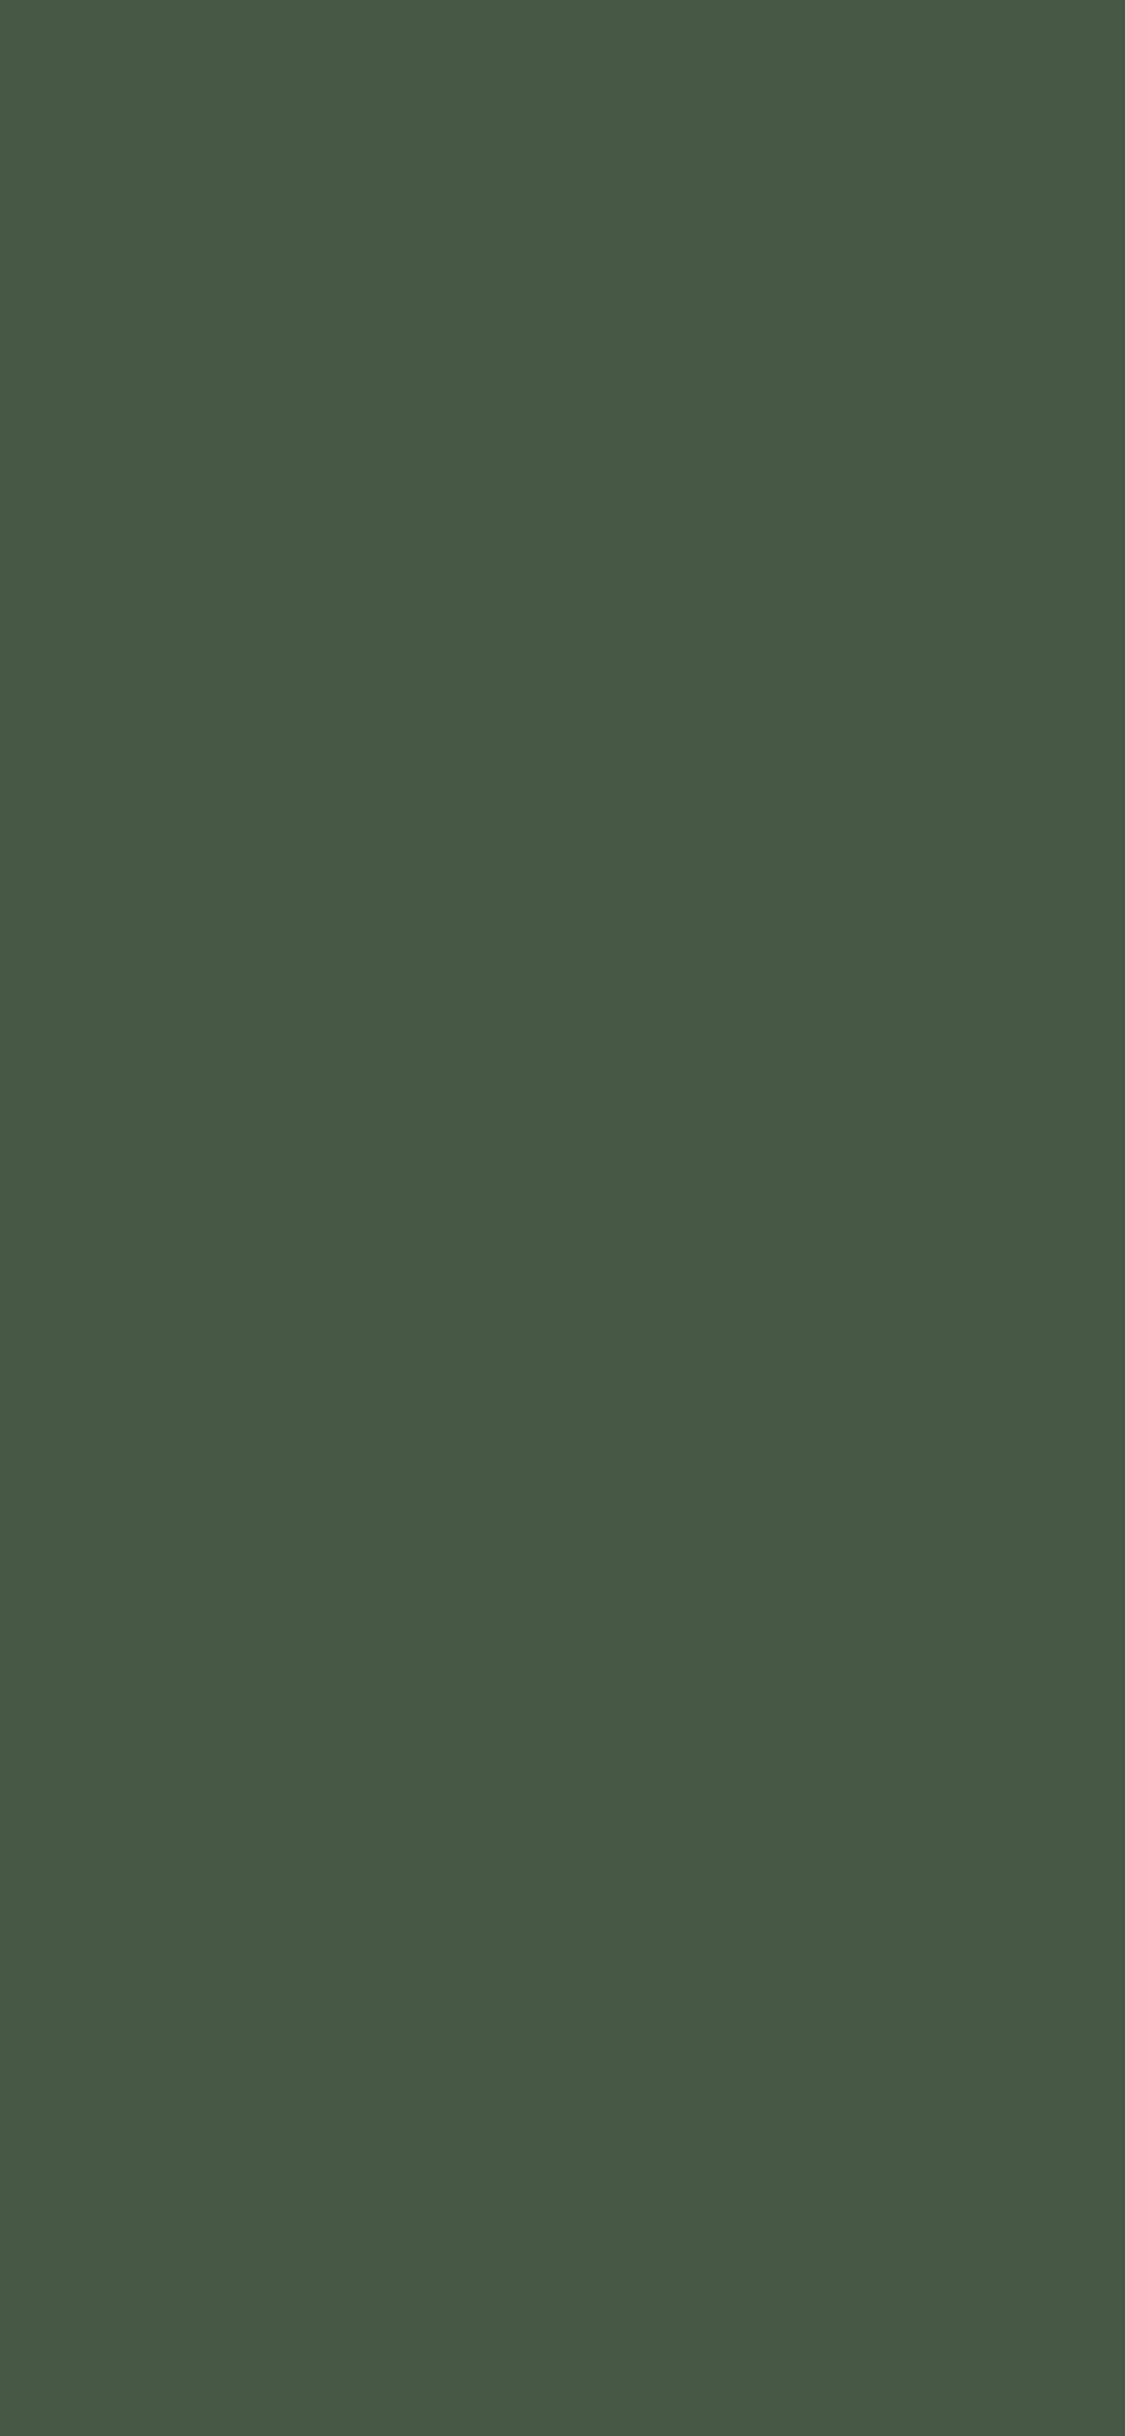 1125x2436 Gray-asparagus Solid Color Background